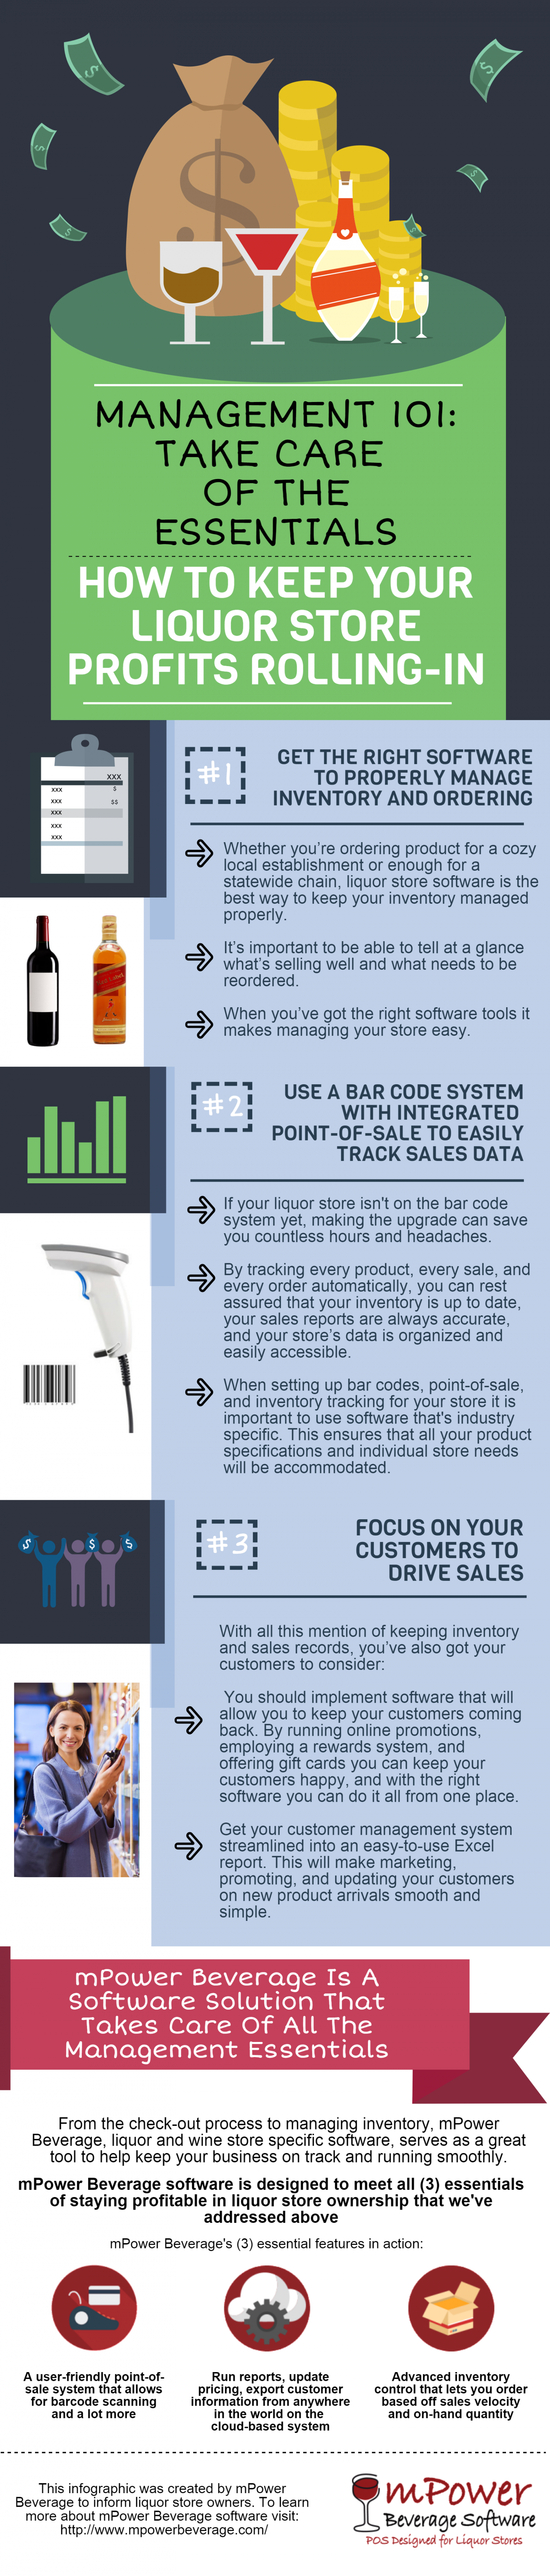 How To Ensure You Keep Your Liquor Store Profitable Infographic